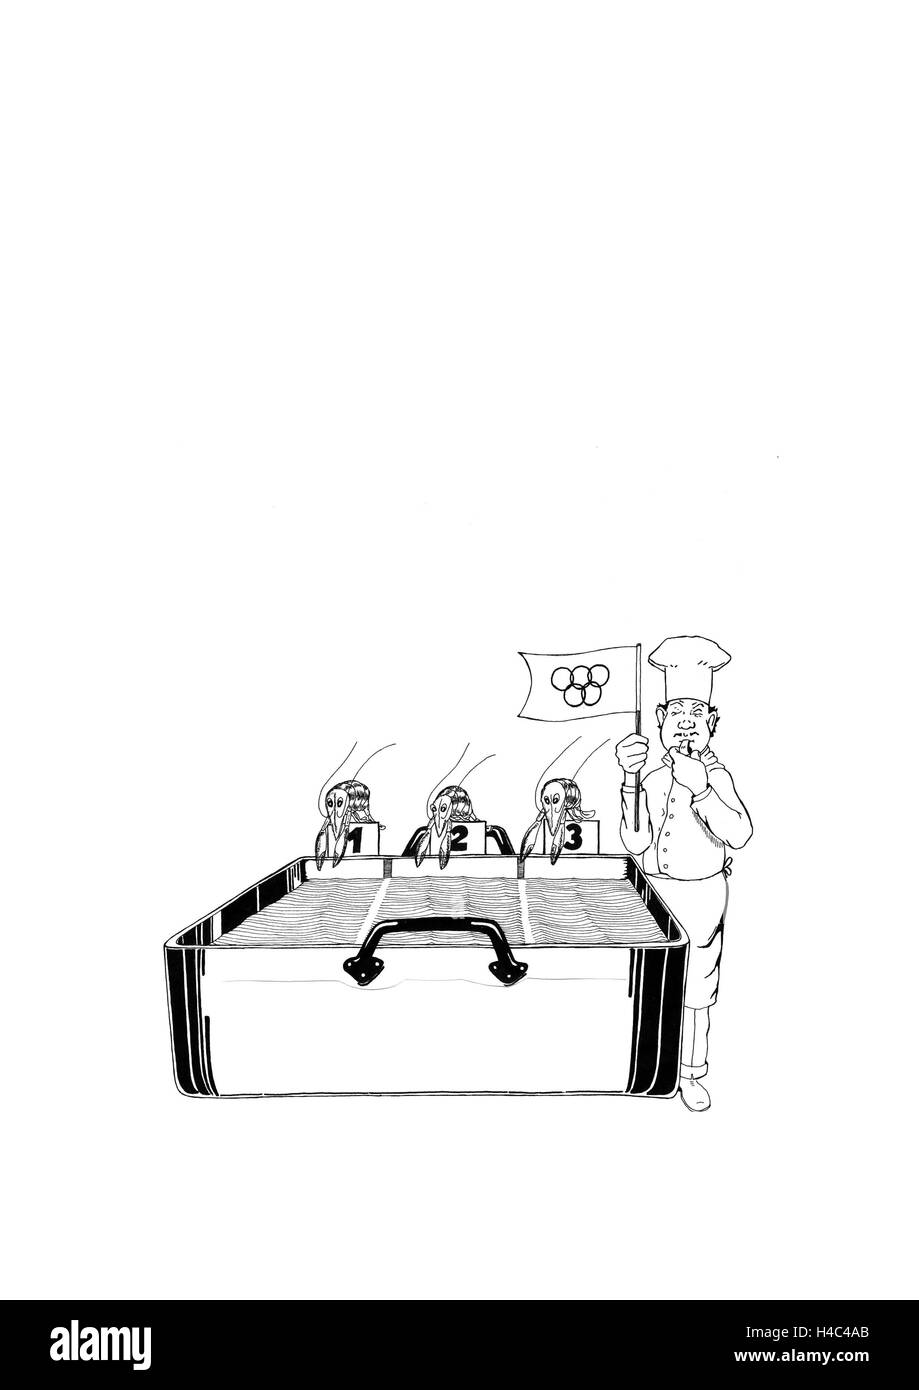 Scampi Olympic Games - Stock Image